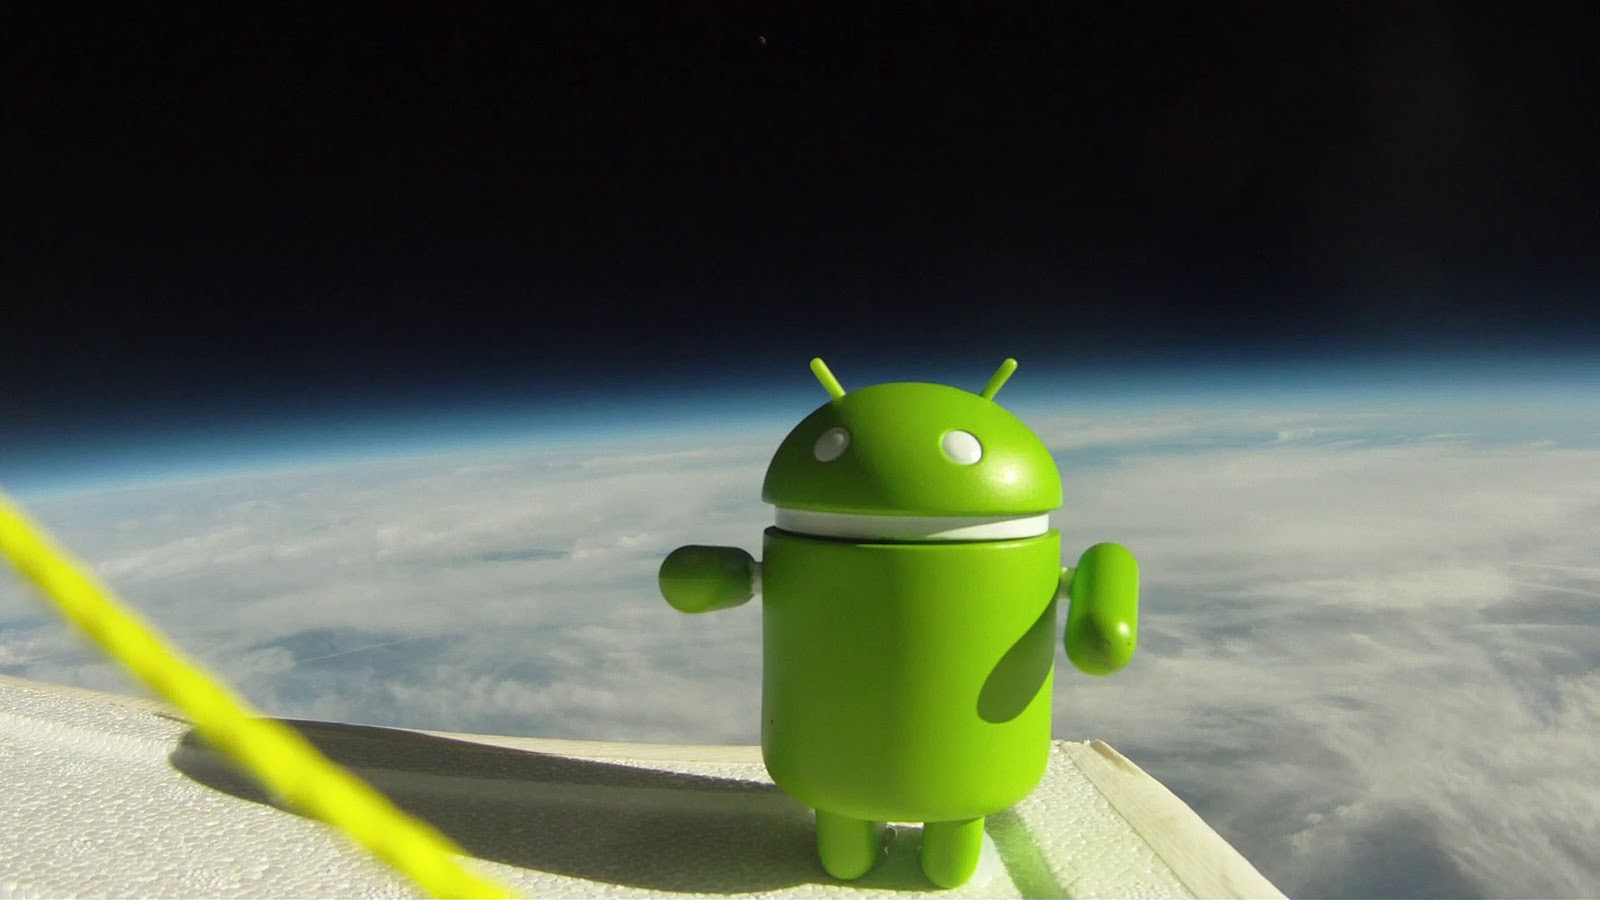 Bugdroid et les versions de Android